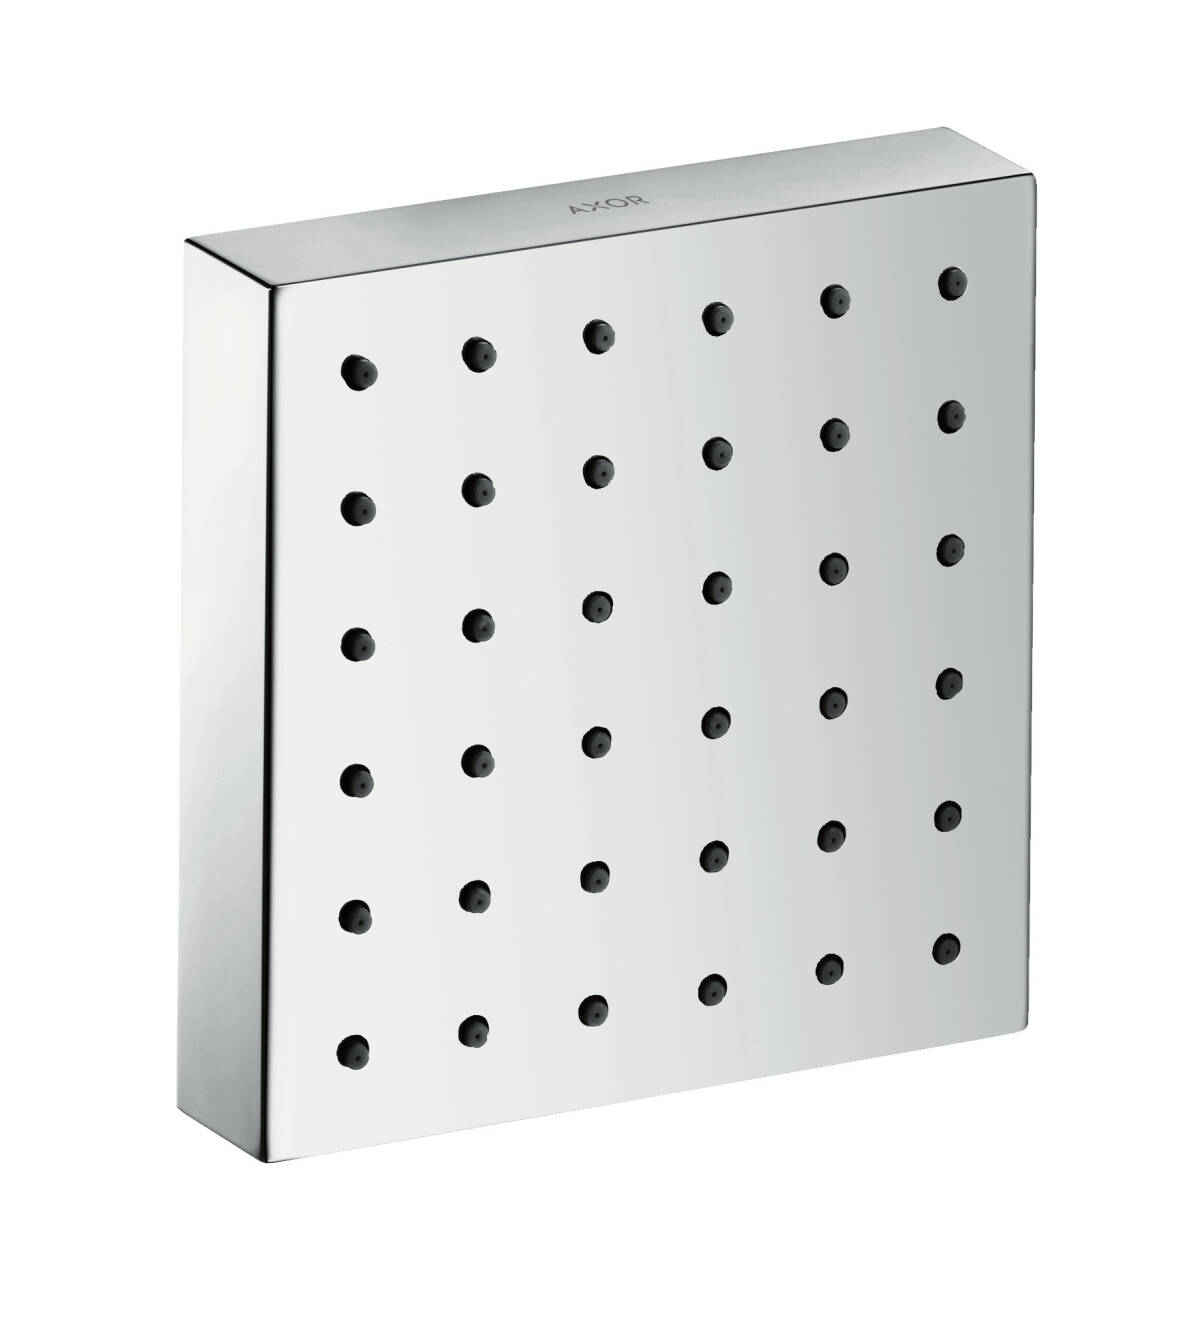 Shower module 120/120 Square for concealed installation, Chrome, 28491000